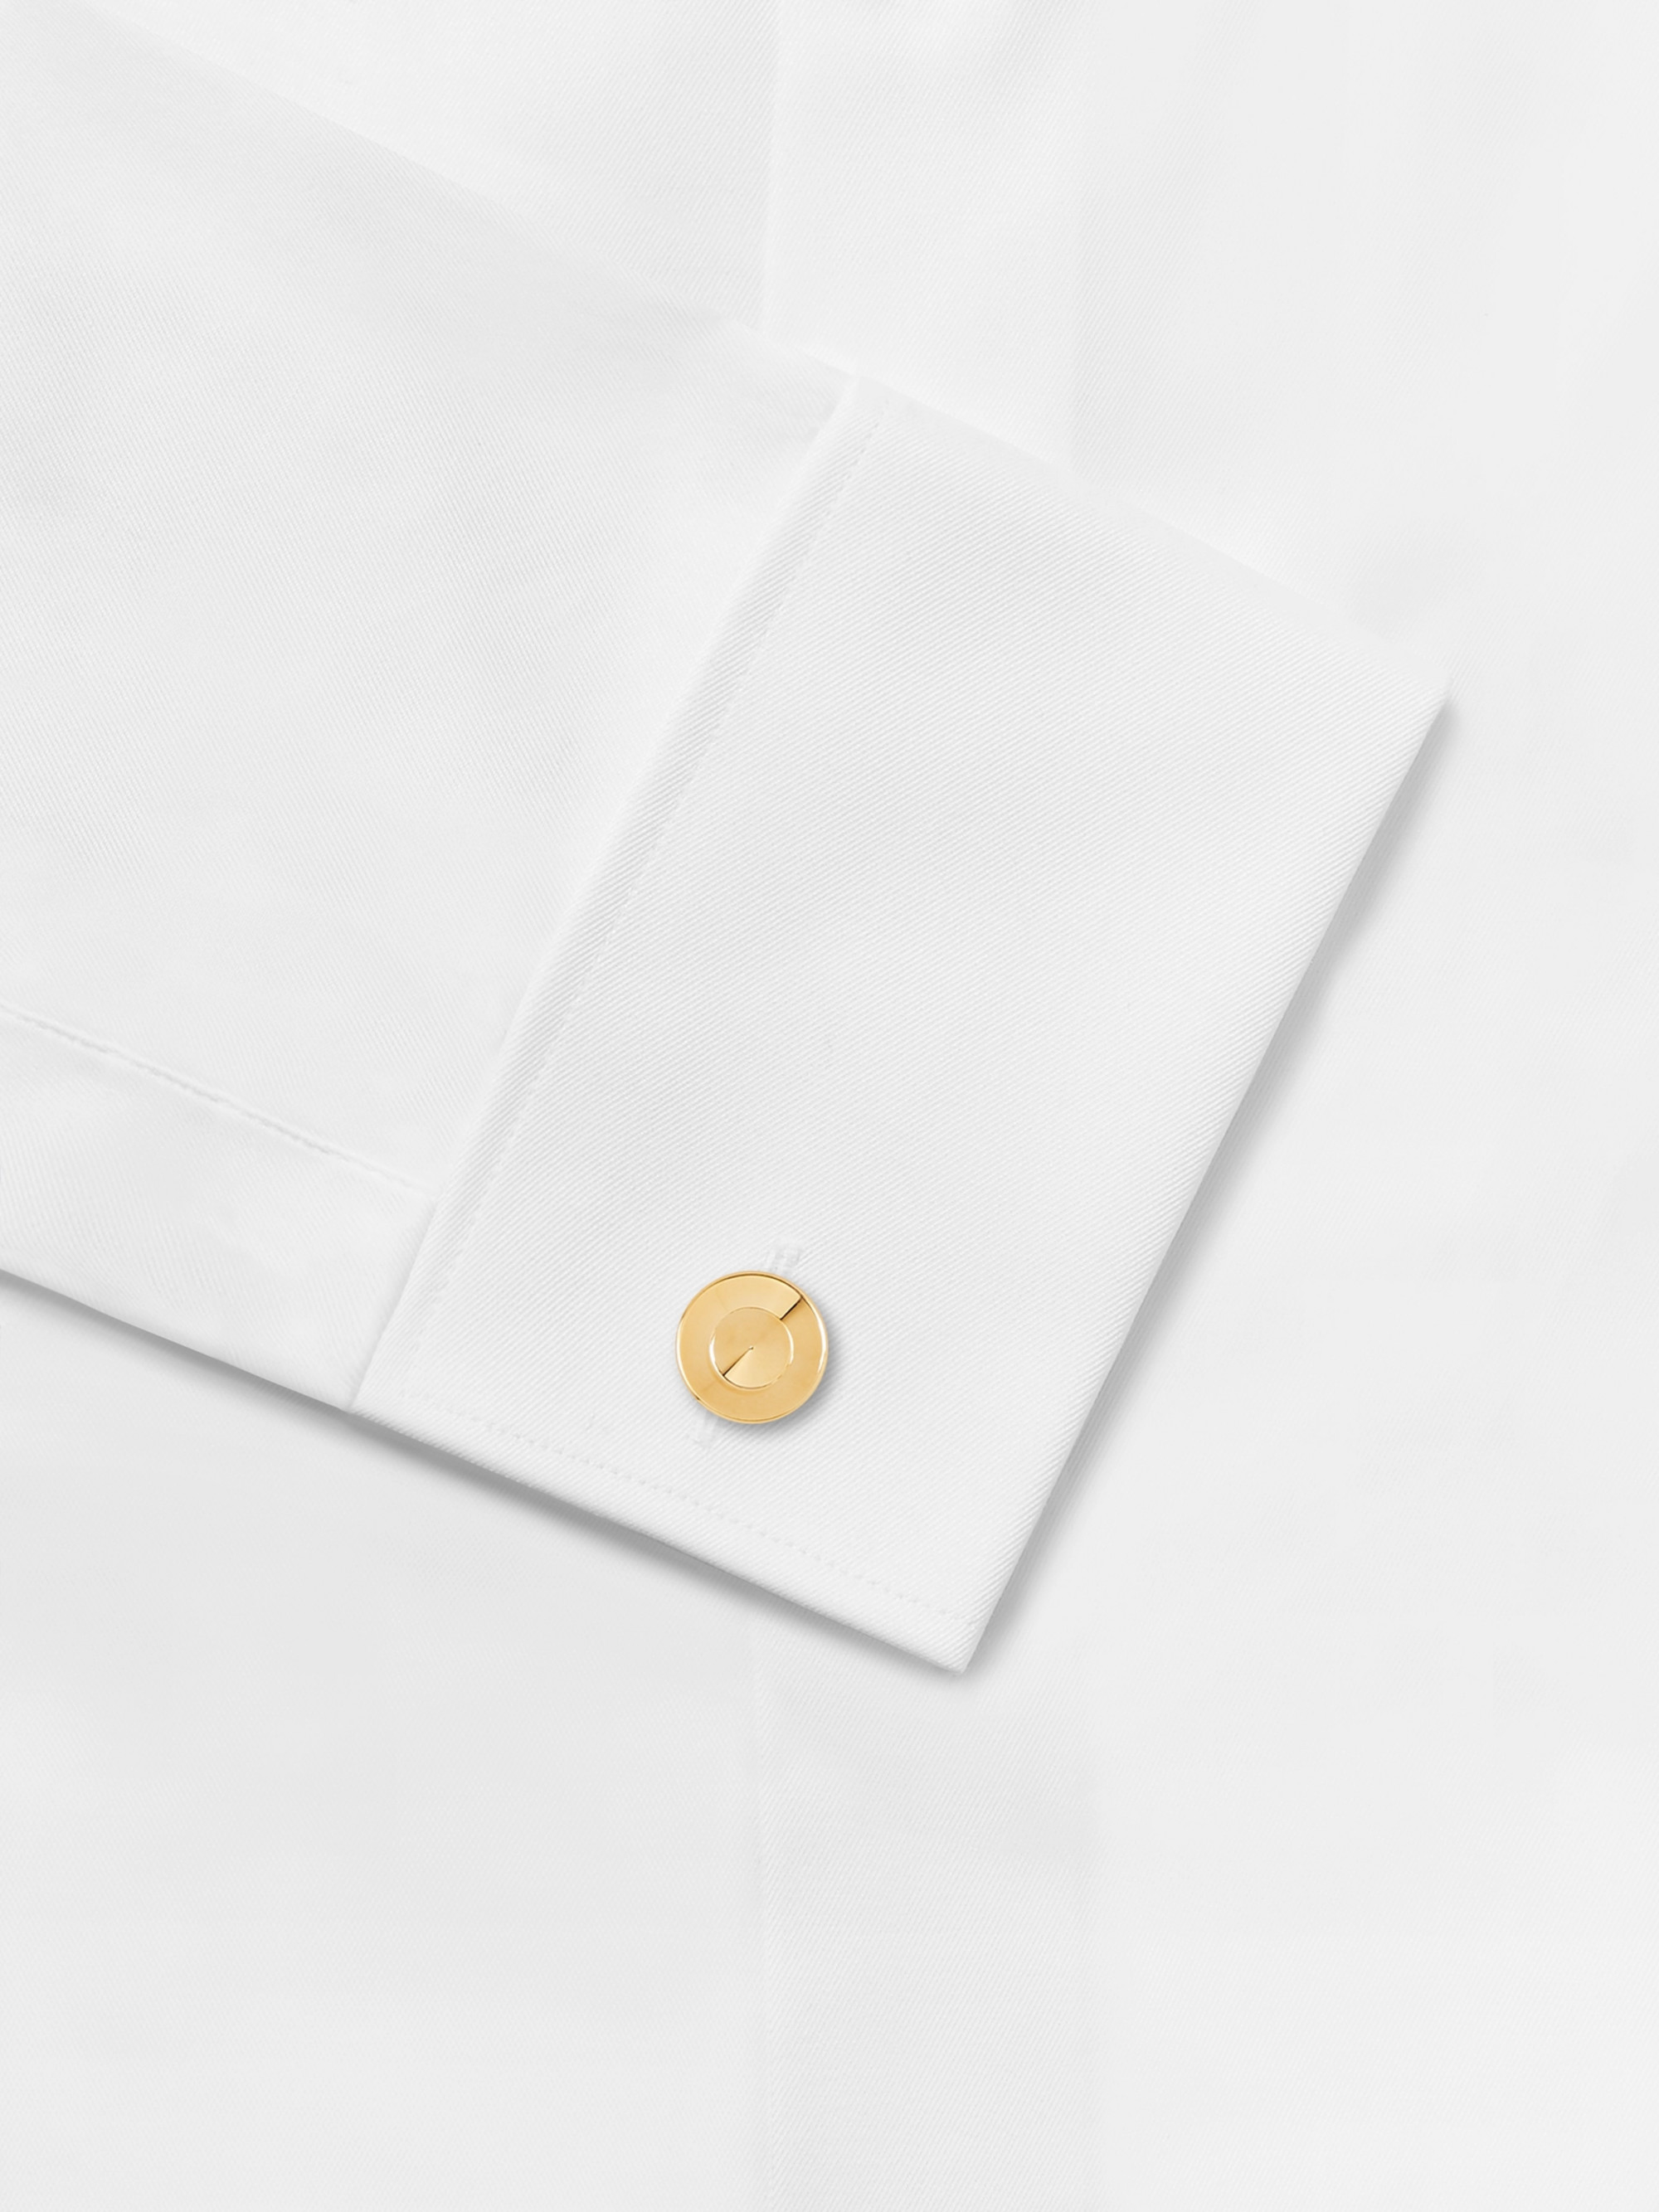 Alice Made This Alvar Gold-Plated Cufflinks